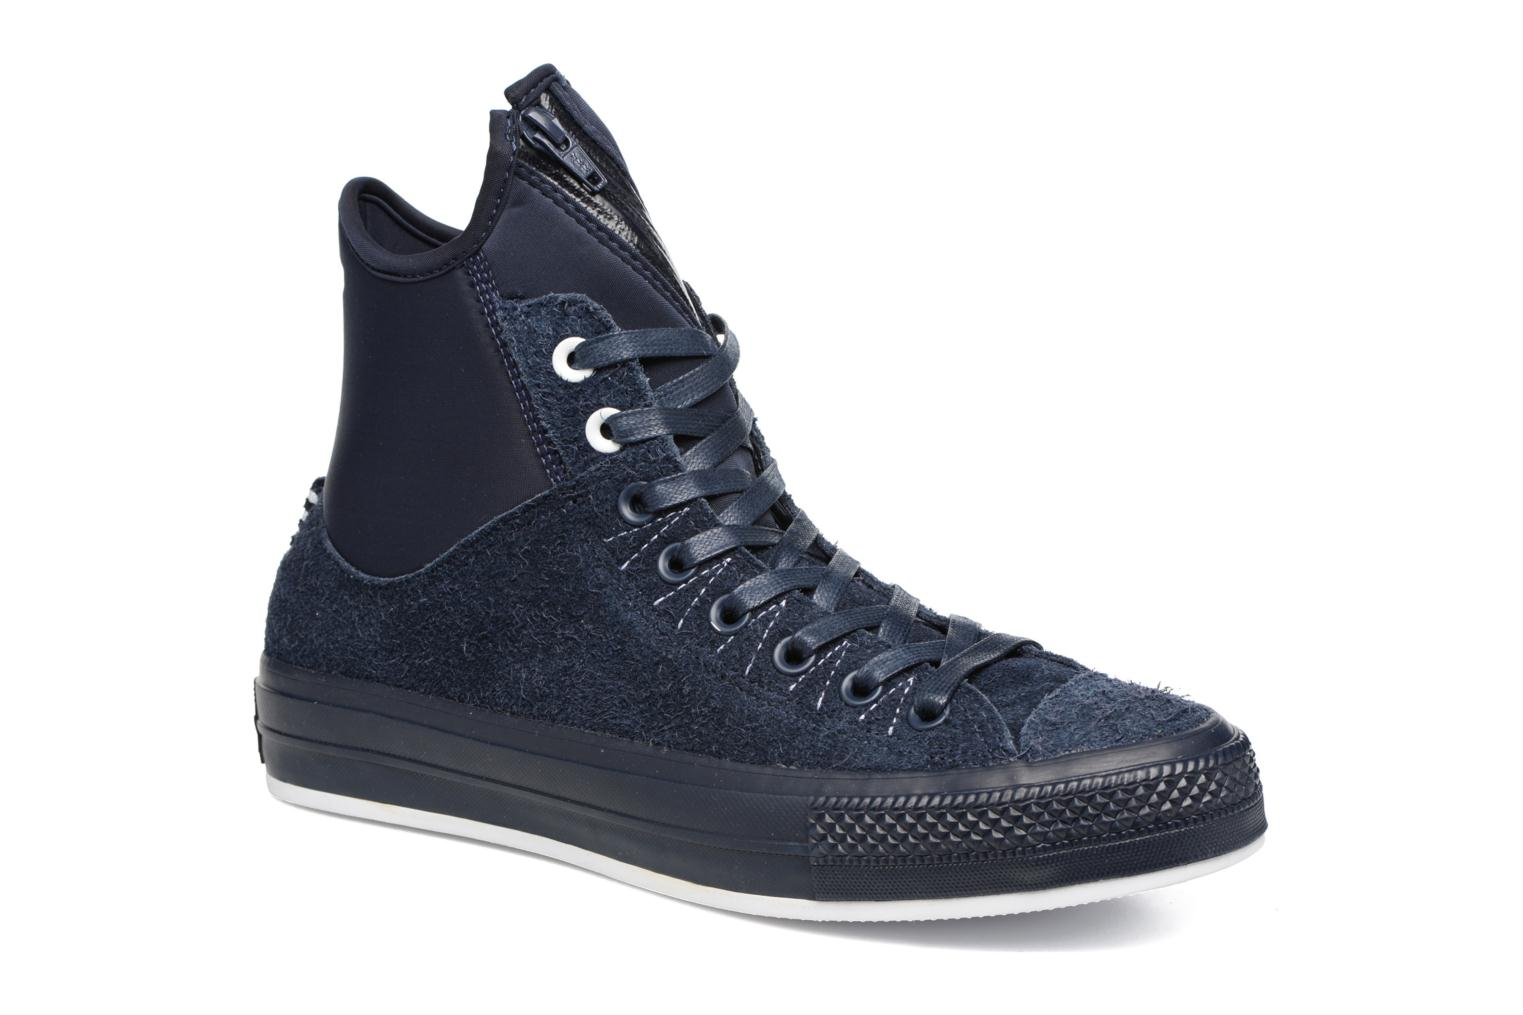 sneakers-ctas-ma-1-hi-m-by-converse